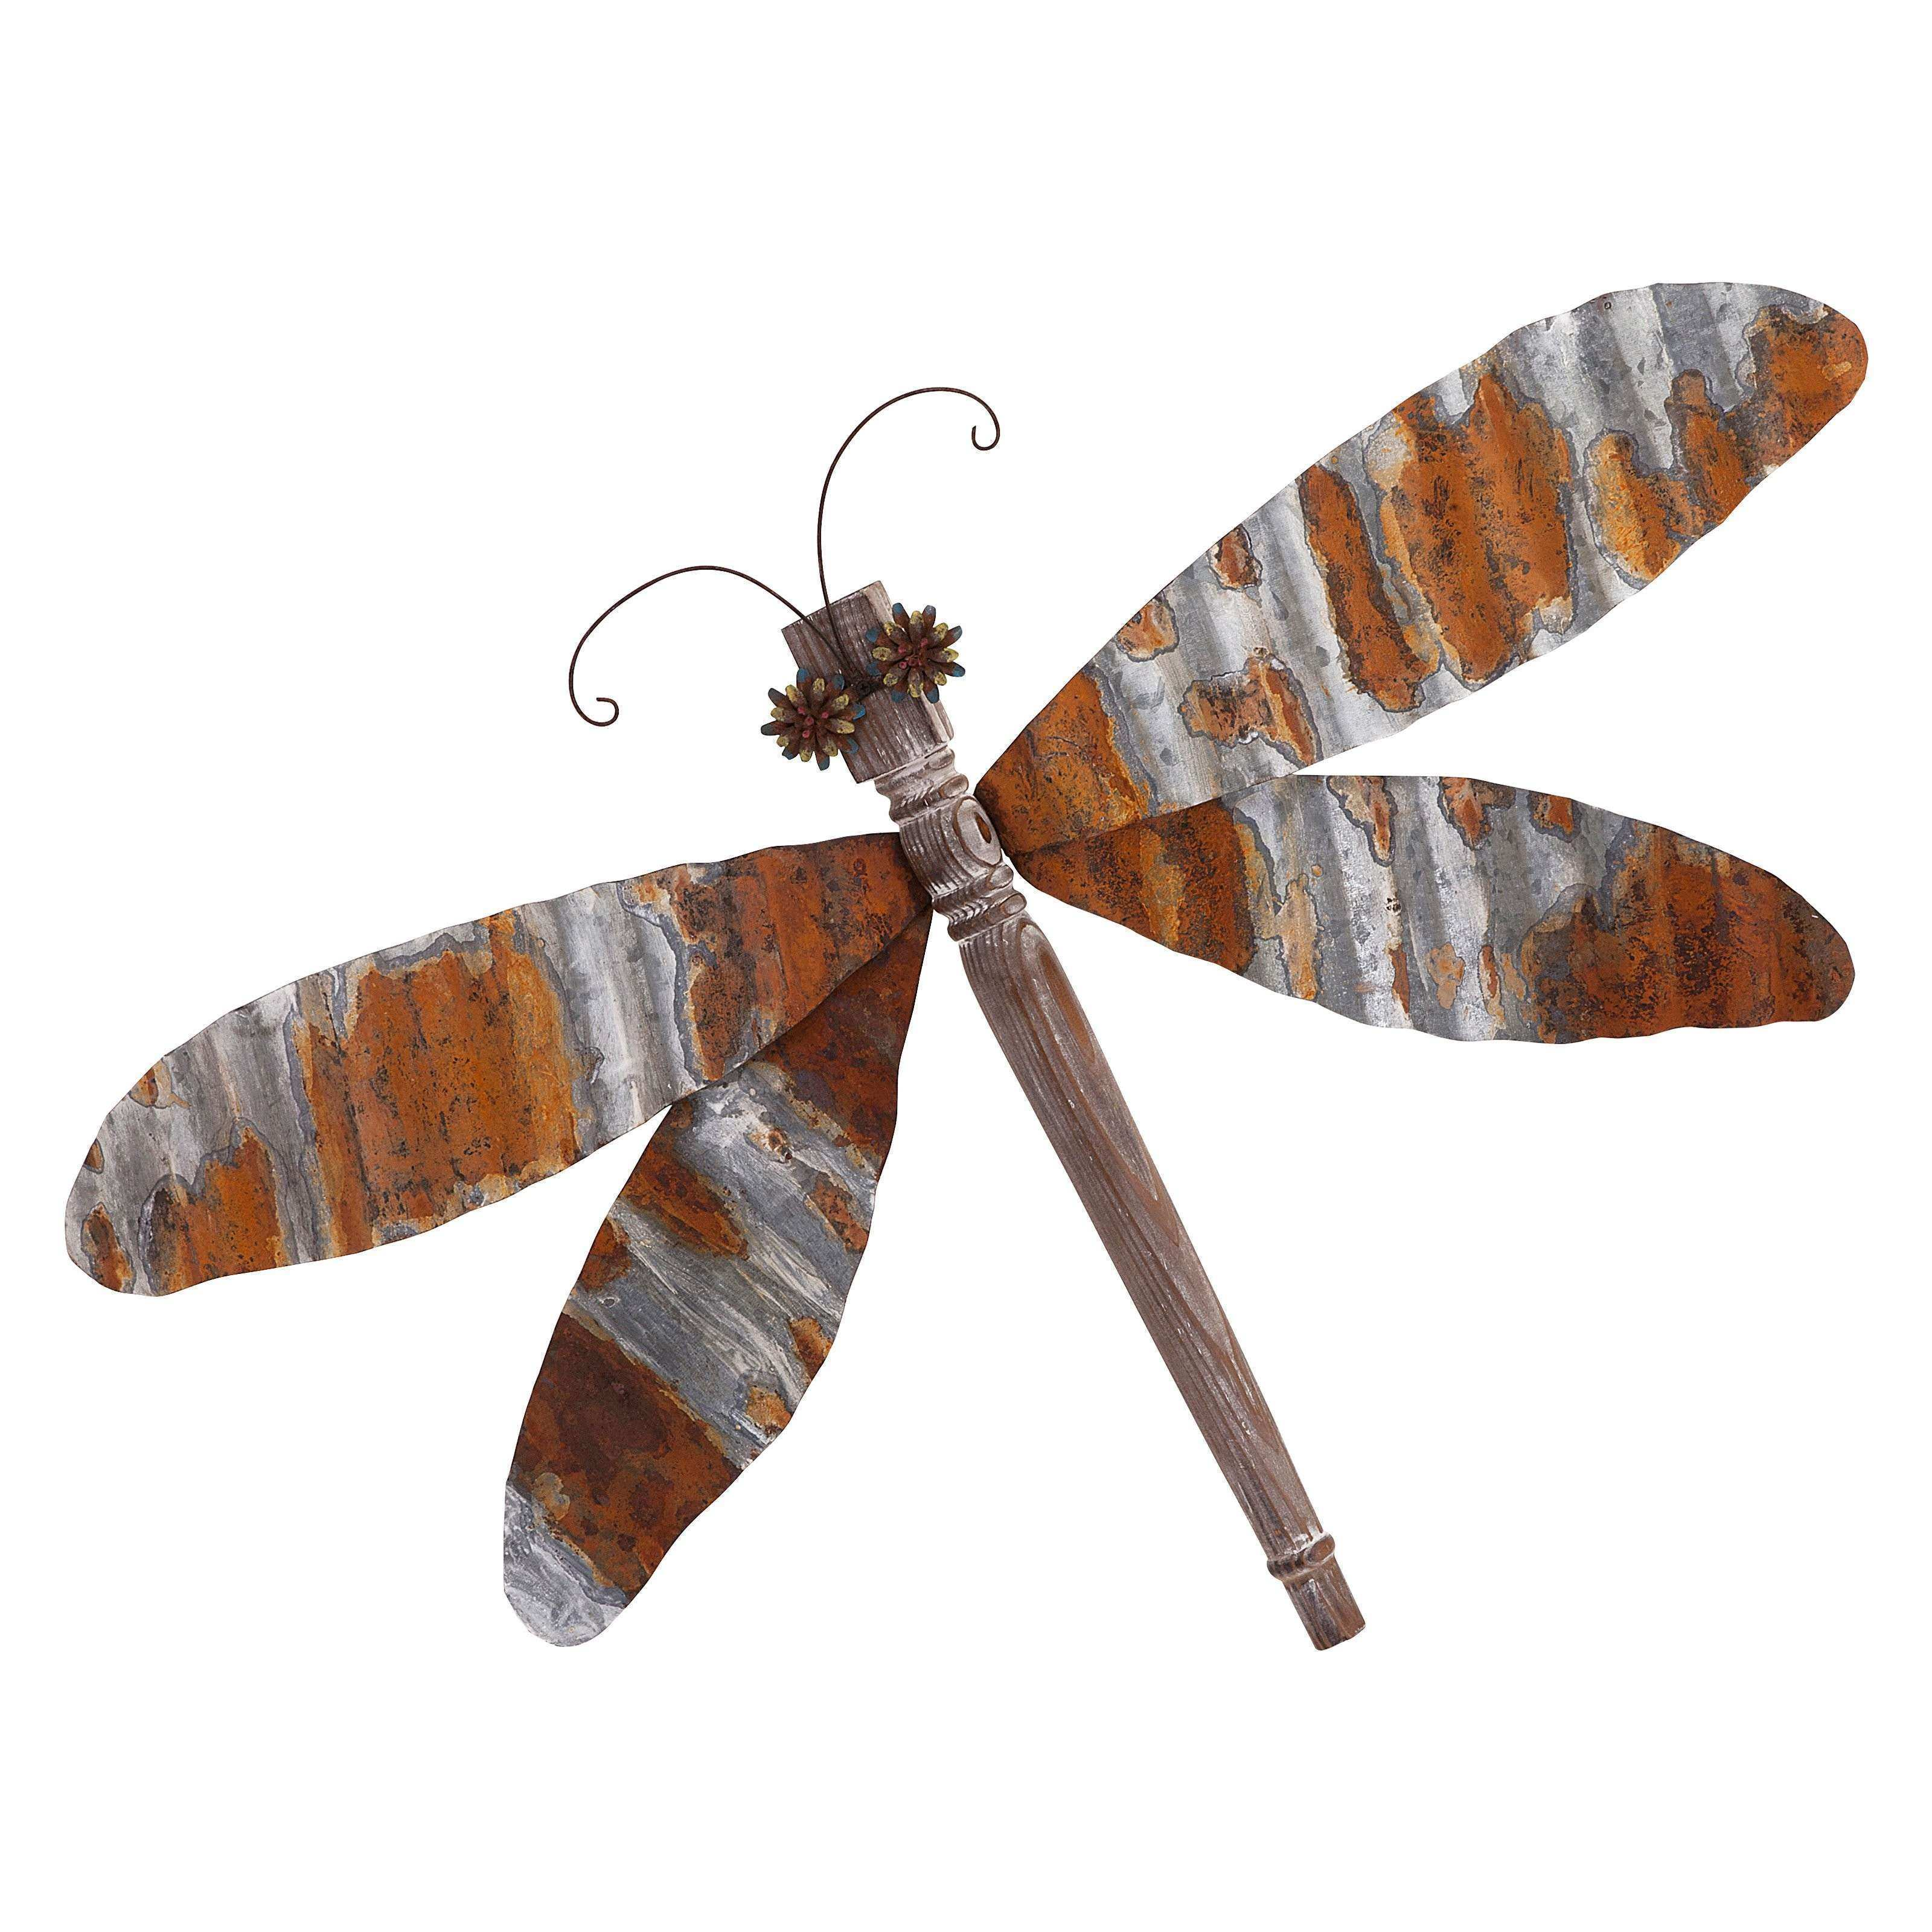 IMAX Corregated Dragonfly Wall Decor 37W x 26H in